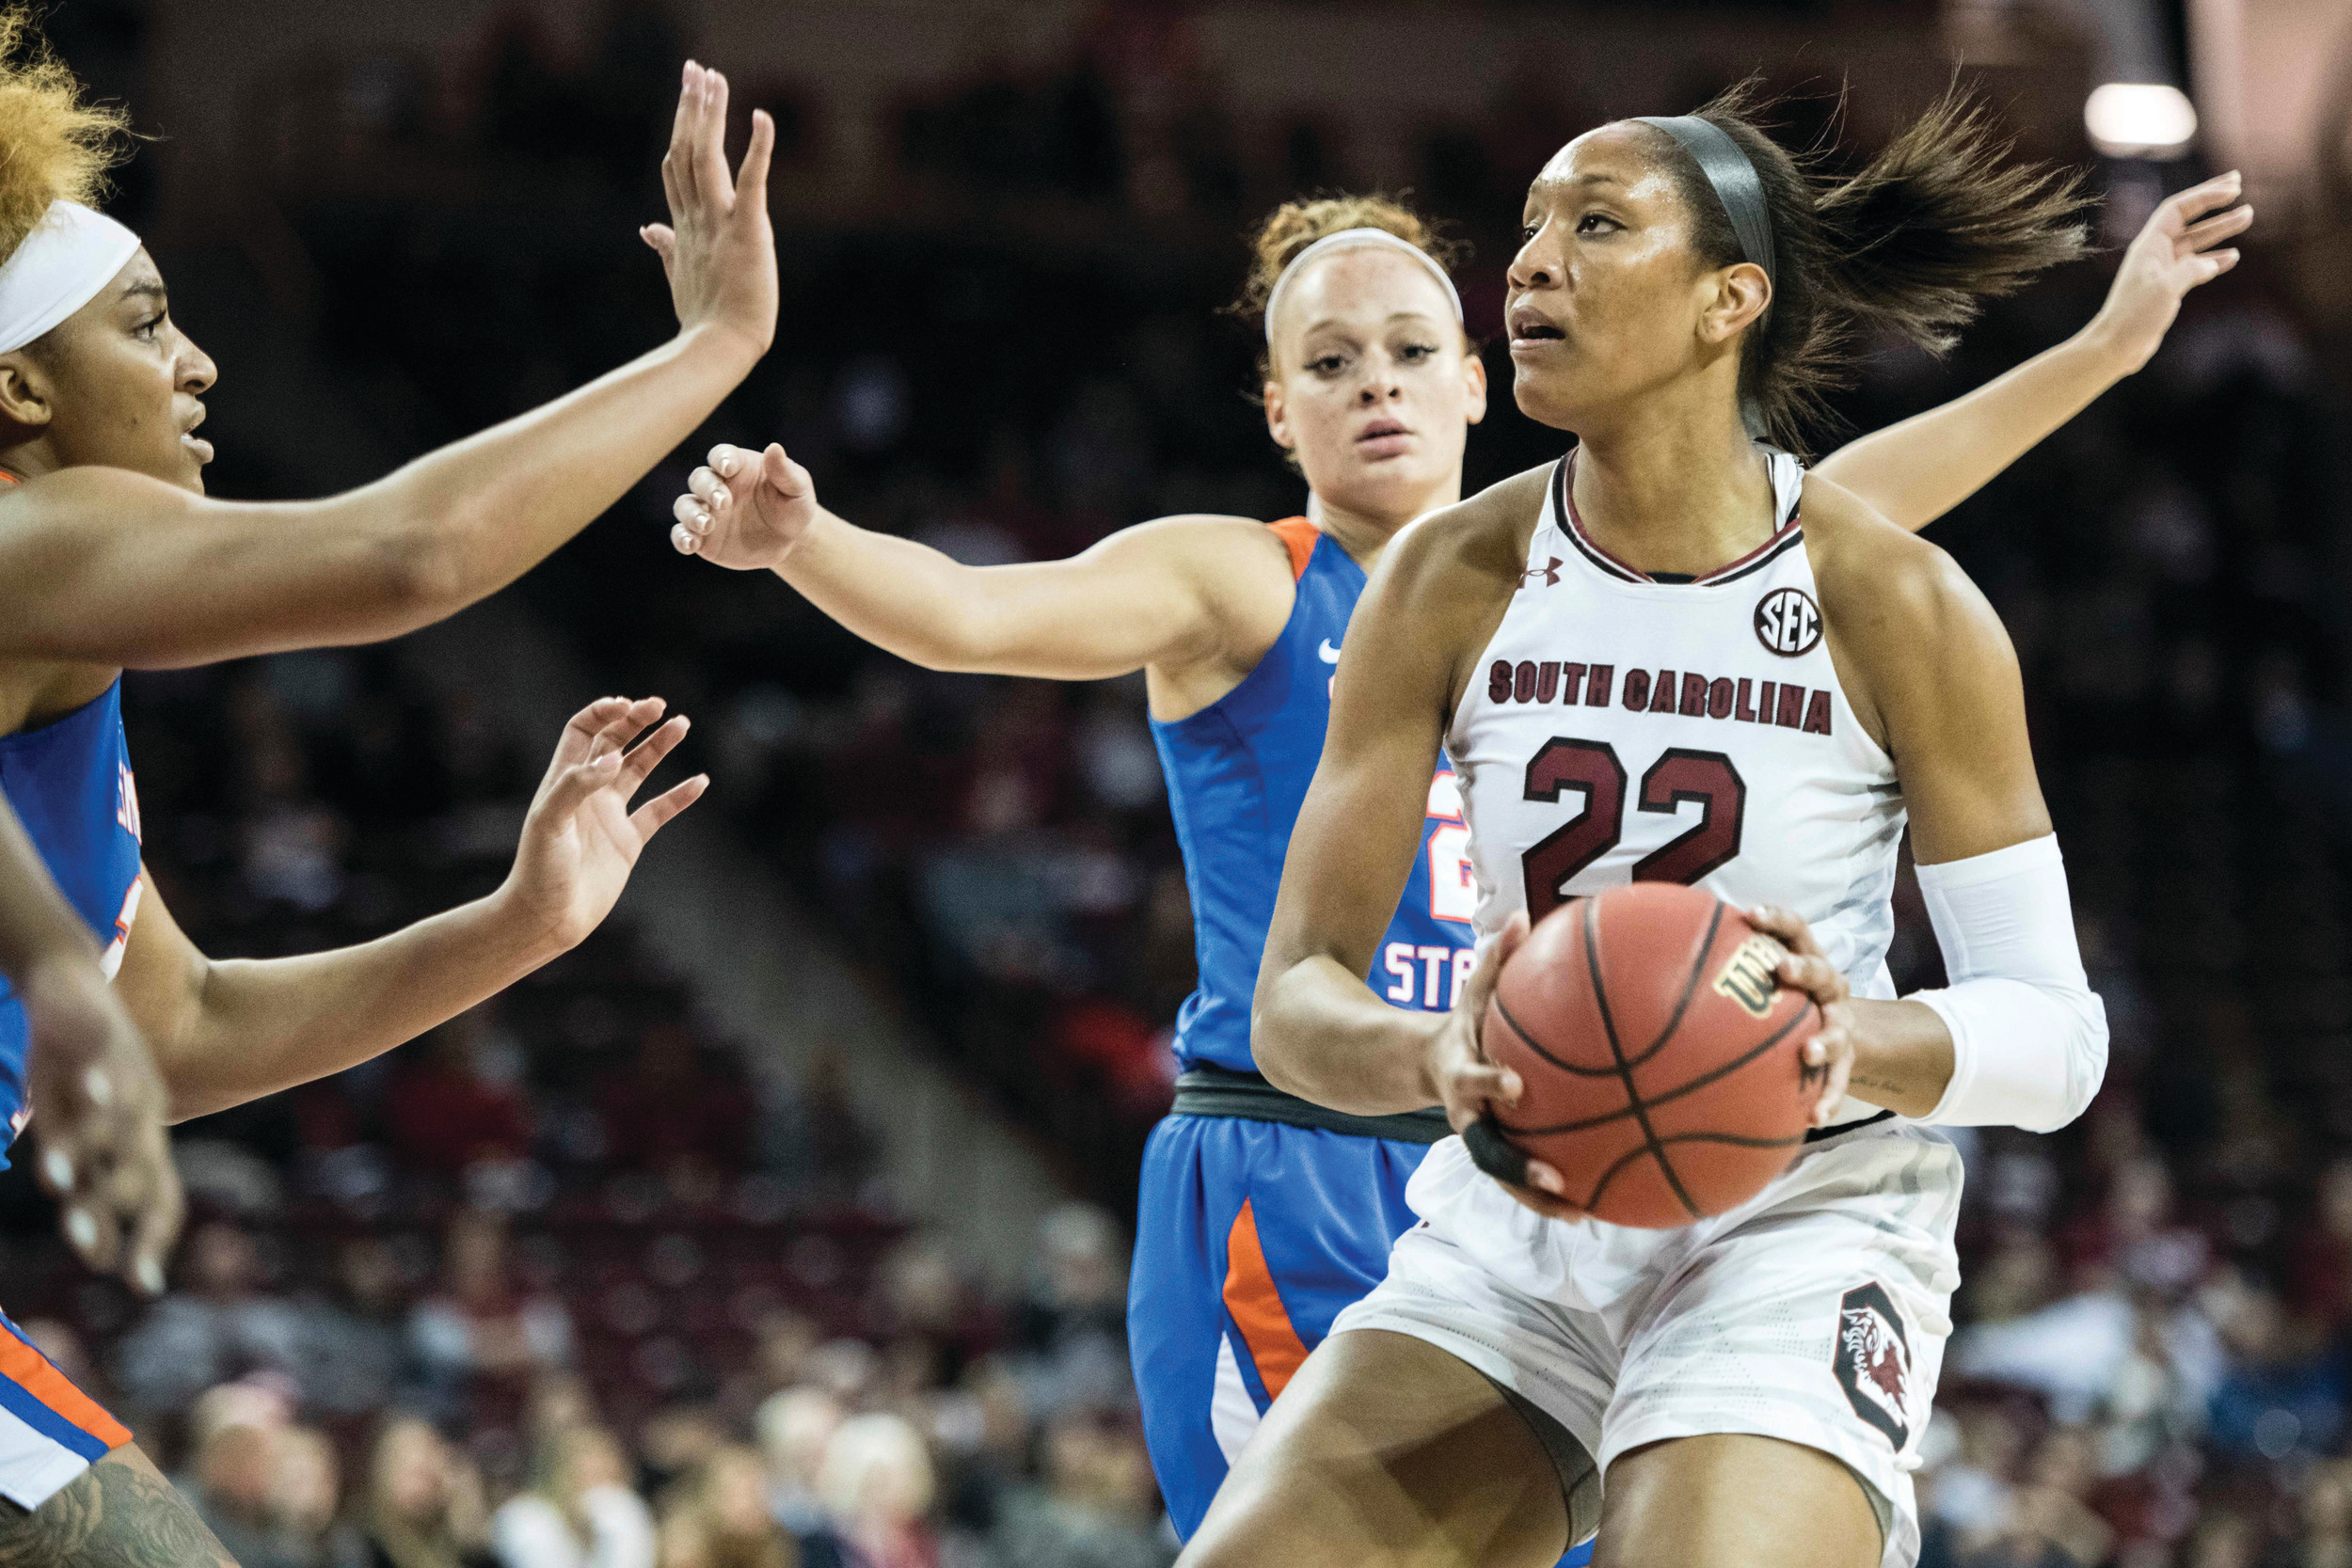 South Carolina's A'ja Wilson (22) drives to the basket against Savannah State's Sabree Gallishaw, left, during the Gamecocks' 99-38 victory on Sunday in Columbia.